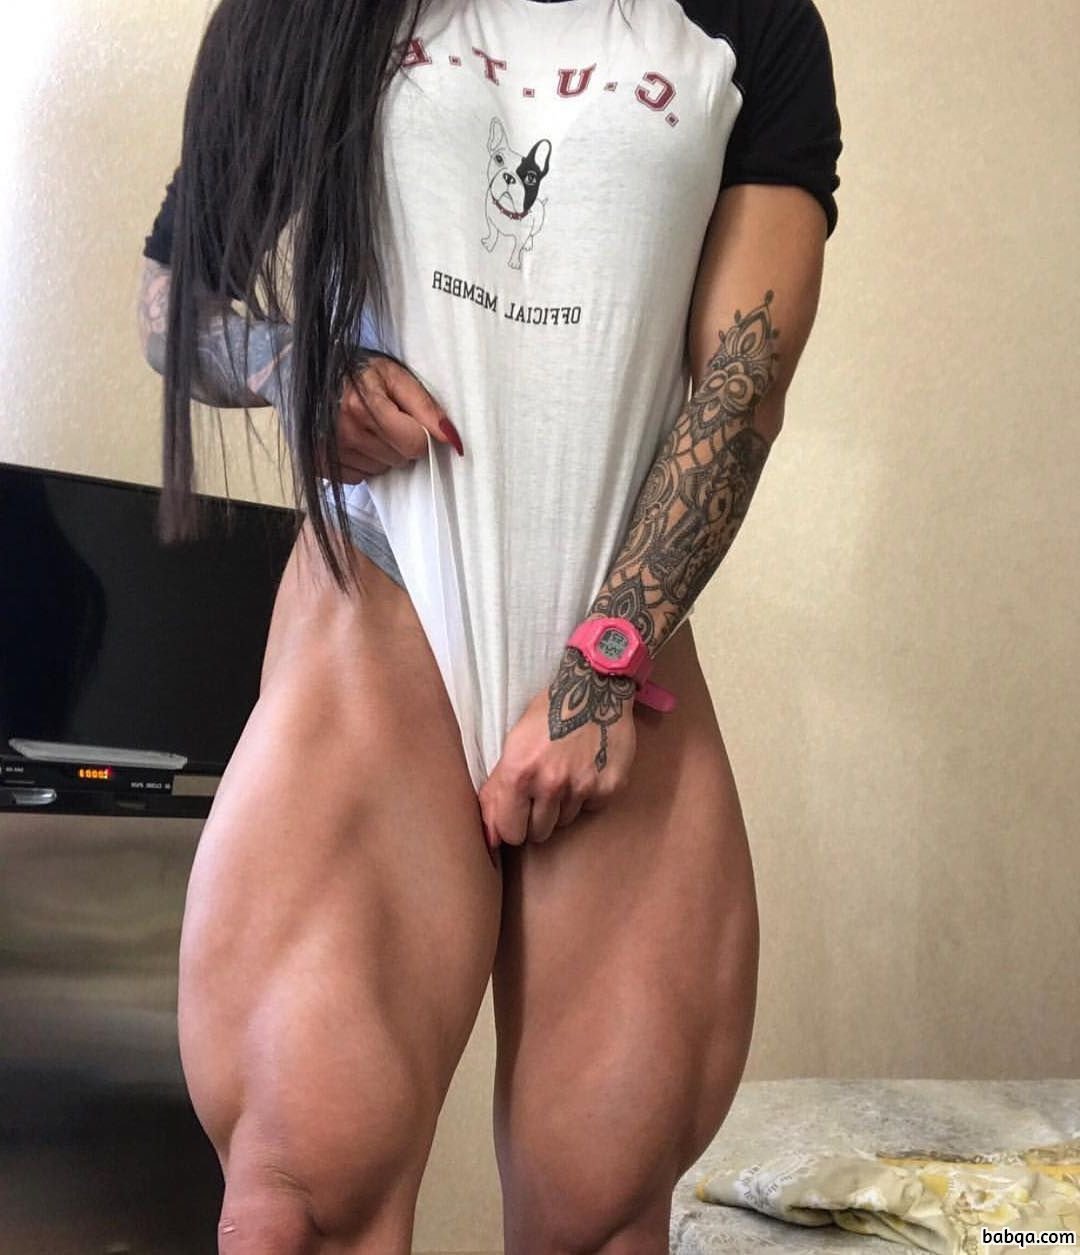 hottest female bodybuilder with muscular body and muscle arms repost from tumblr